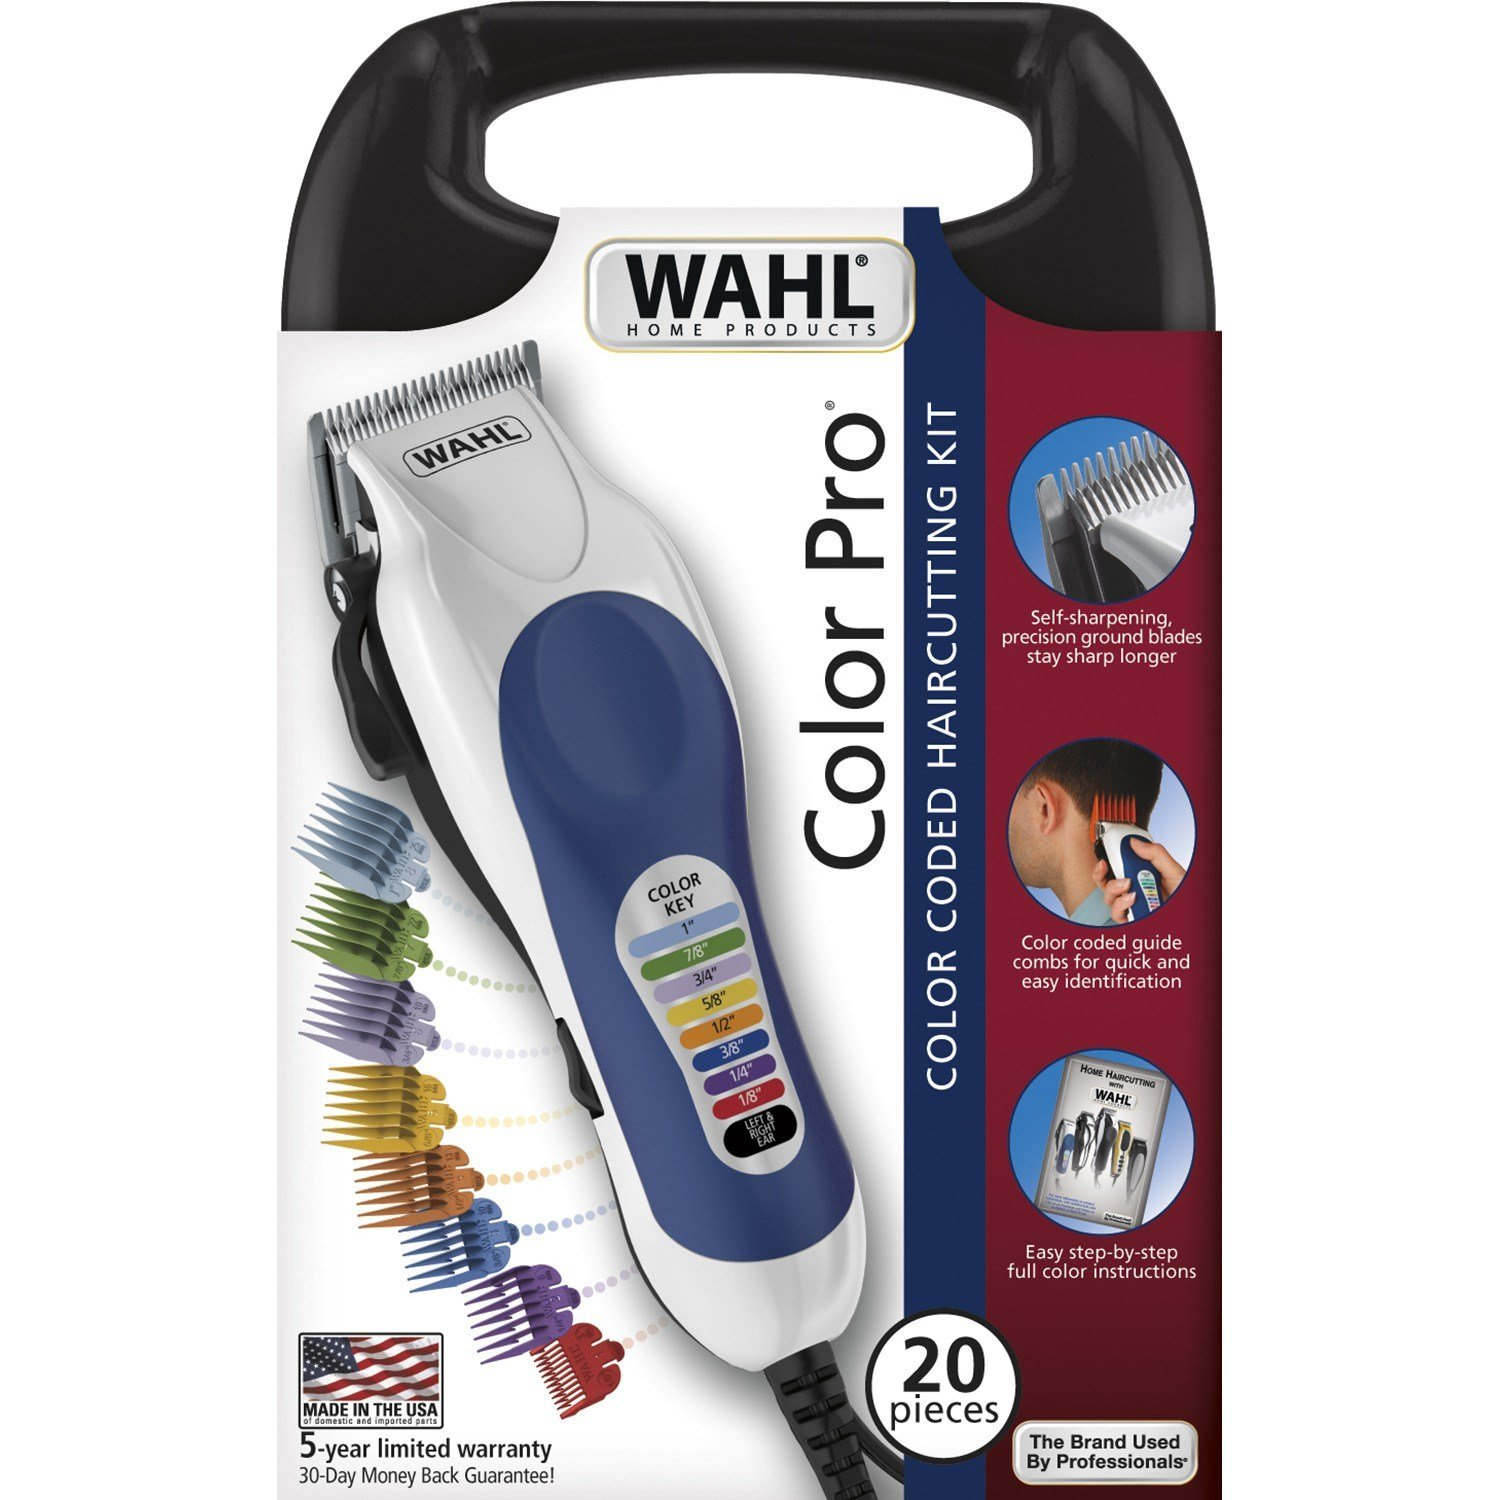 The Best Wahl Haircutting Kit Color Coded Color Pro 1 Kit Rite Aid Pictures